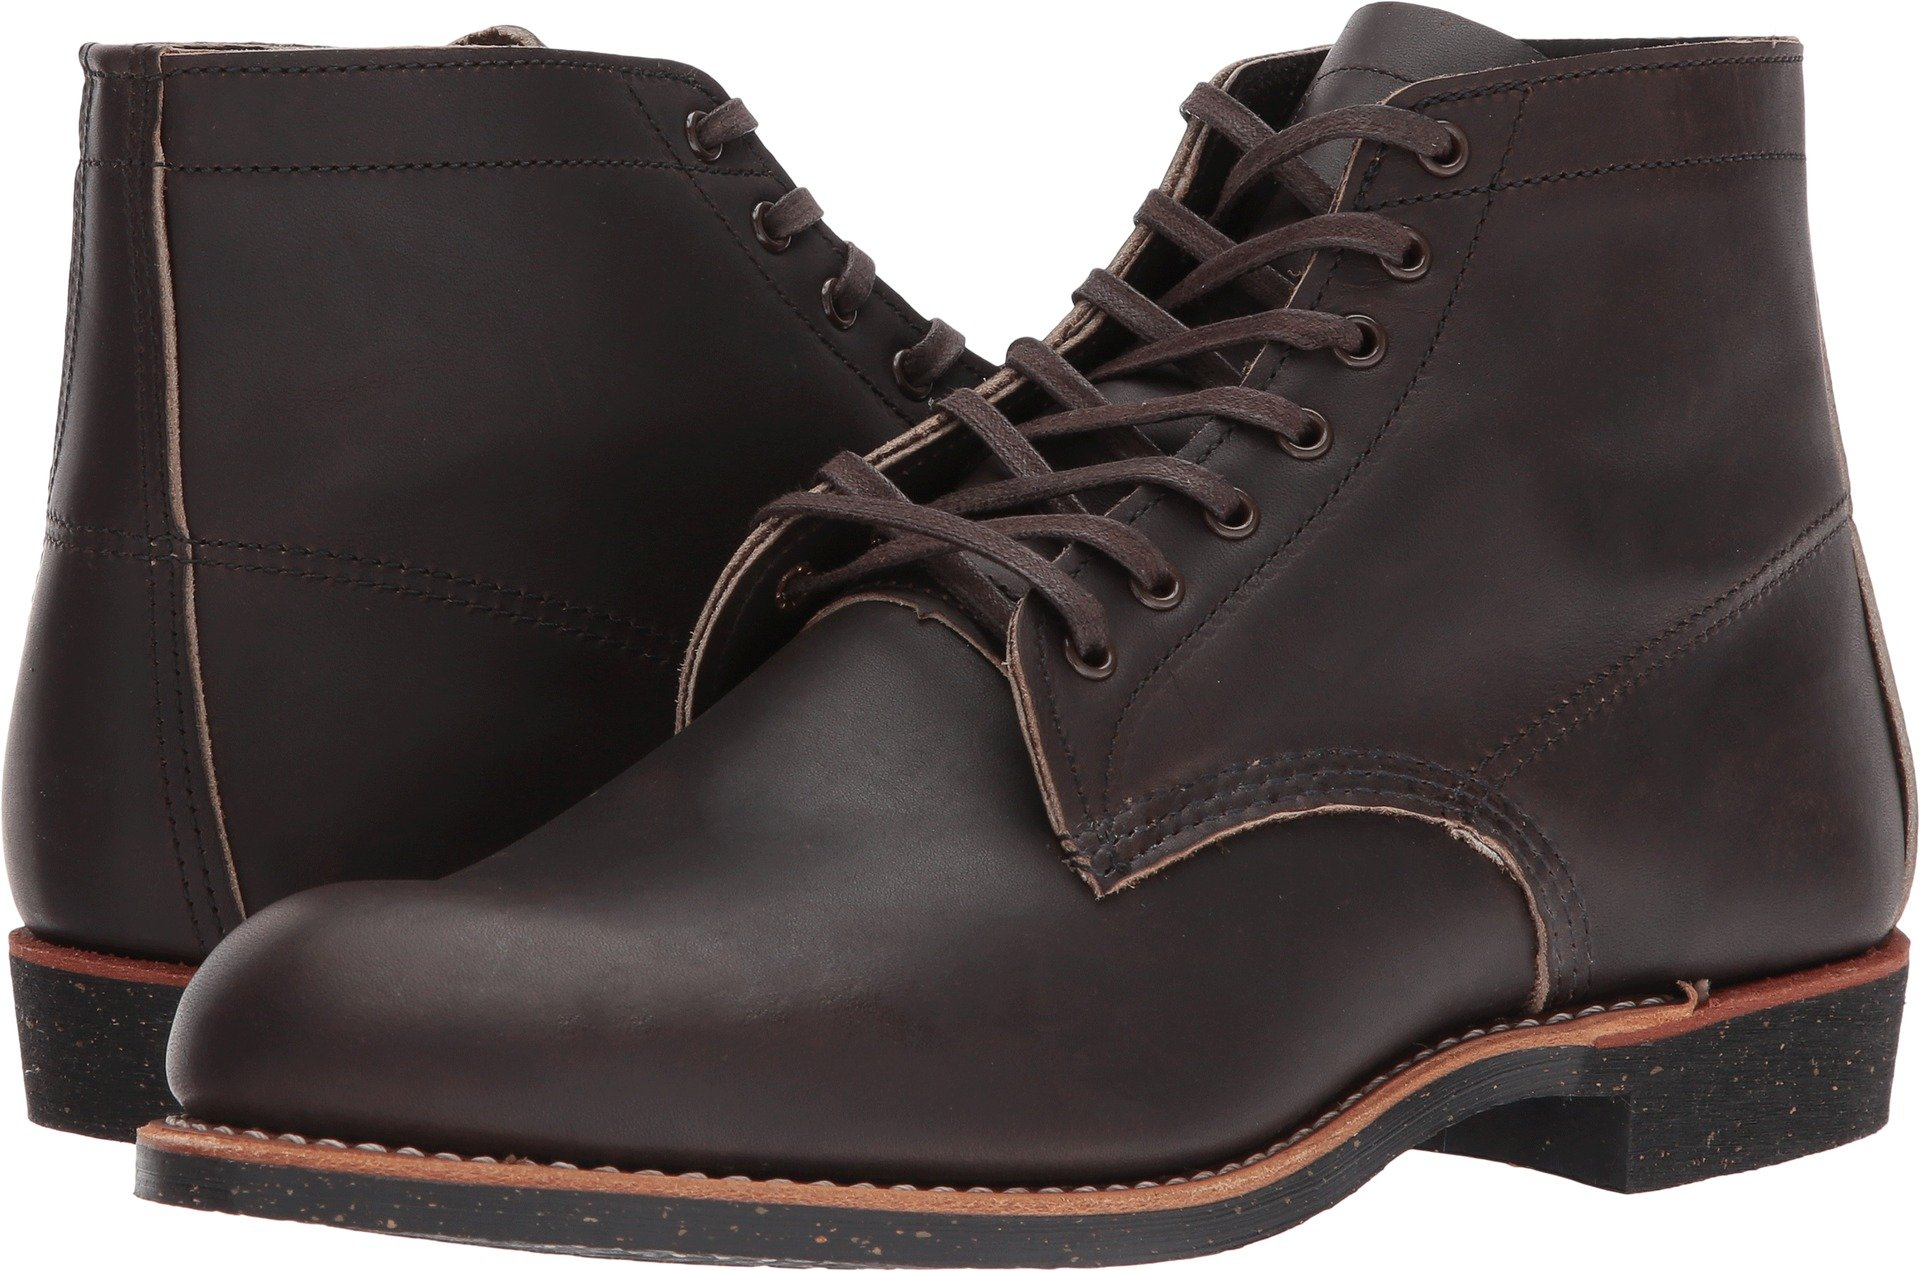 Red Wing Merchant Boots 12 D(M) US Ebony Harness